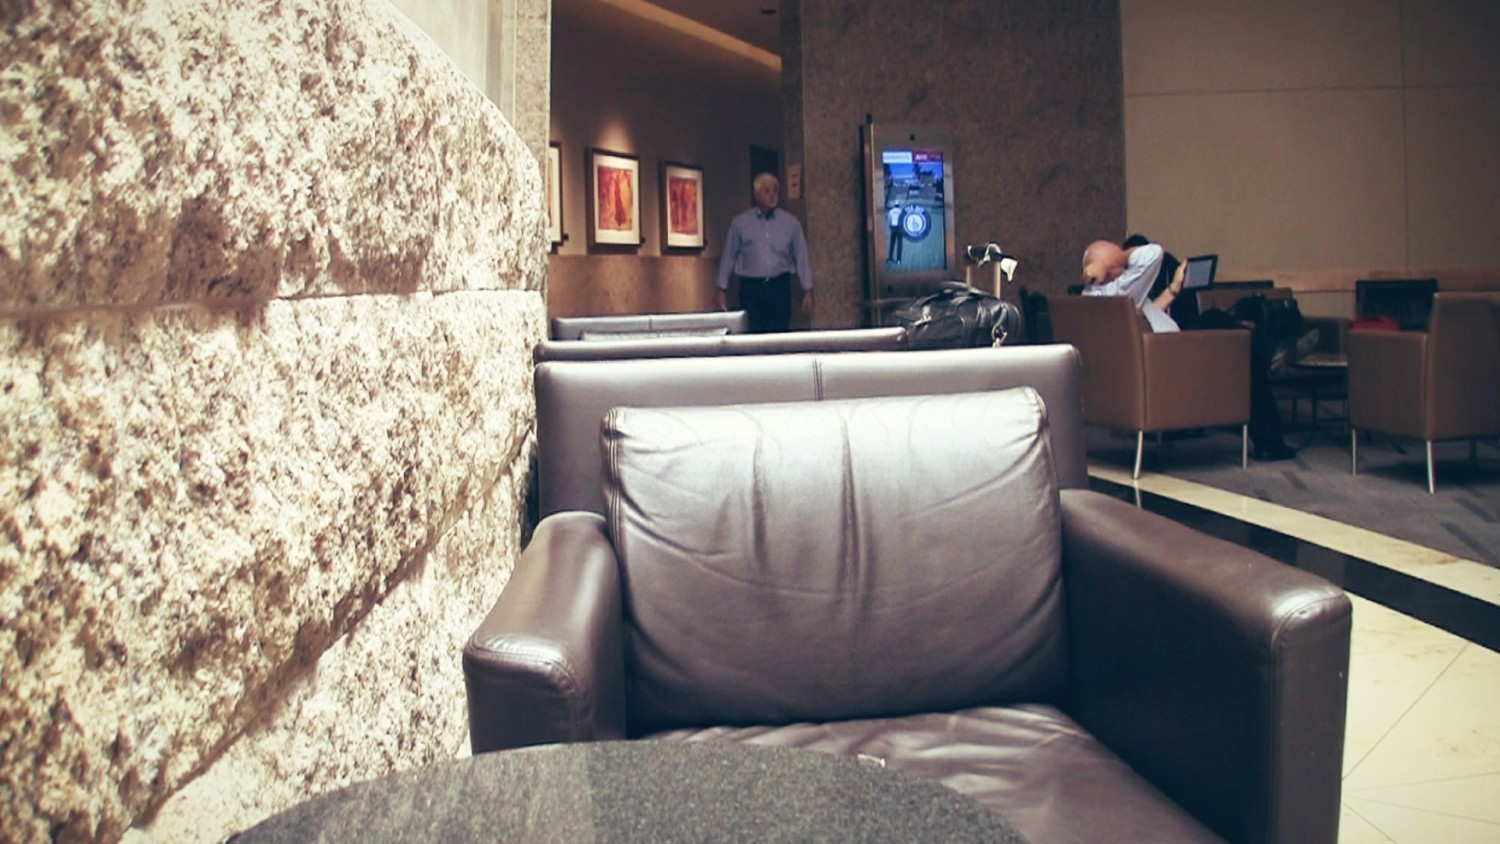 Seating in the main hallway of American Airlines Admirals Club DFW TA